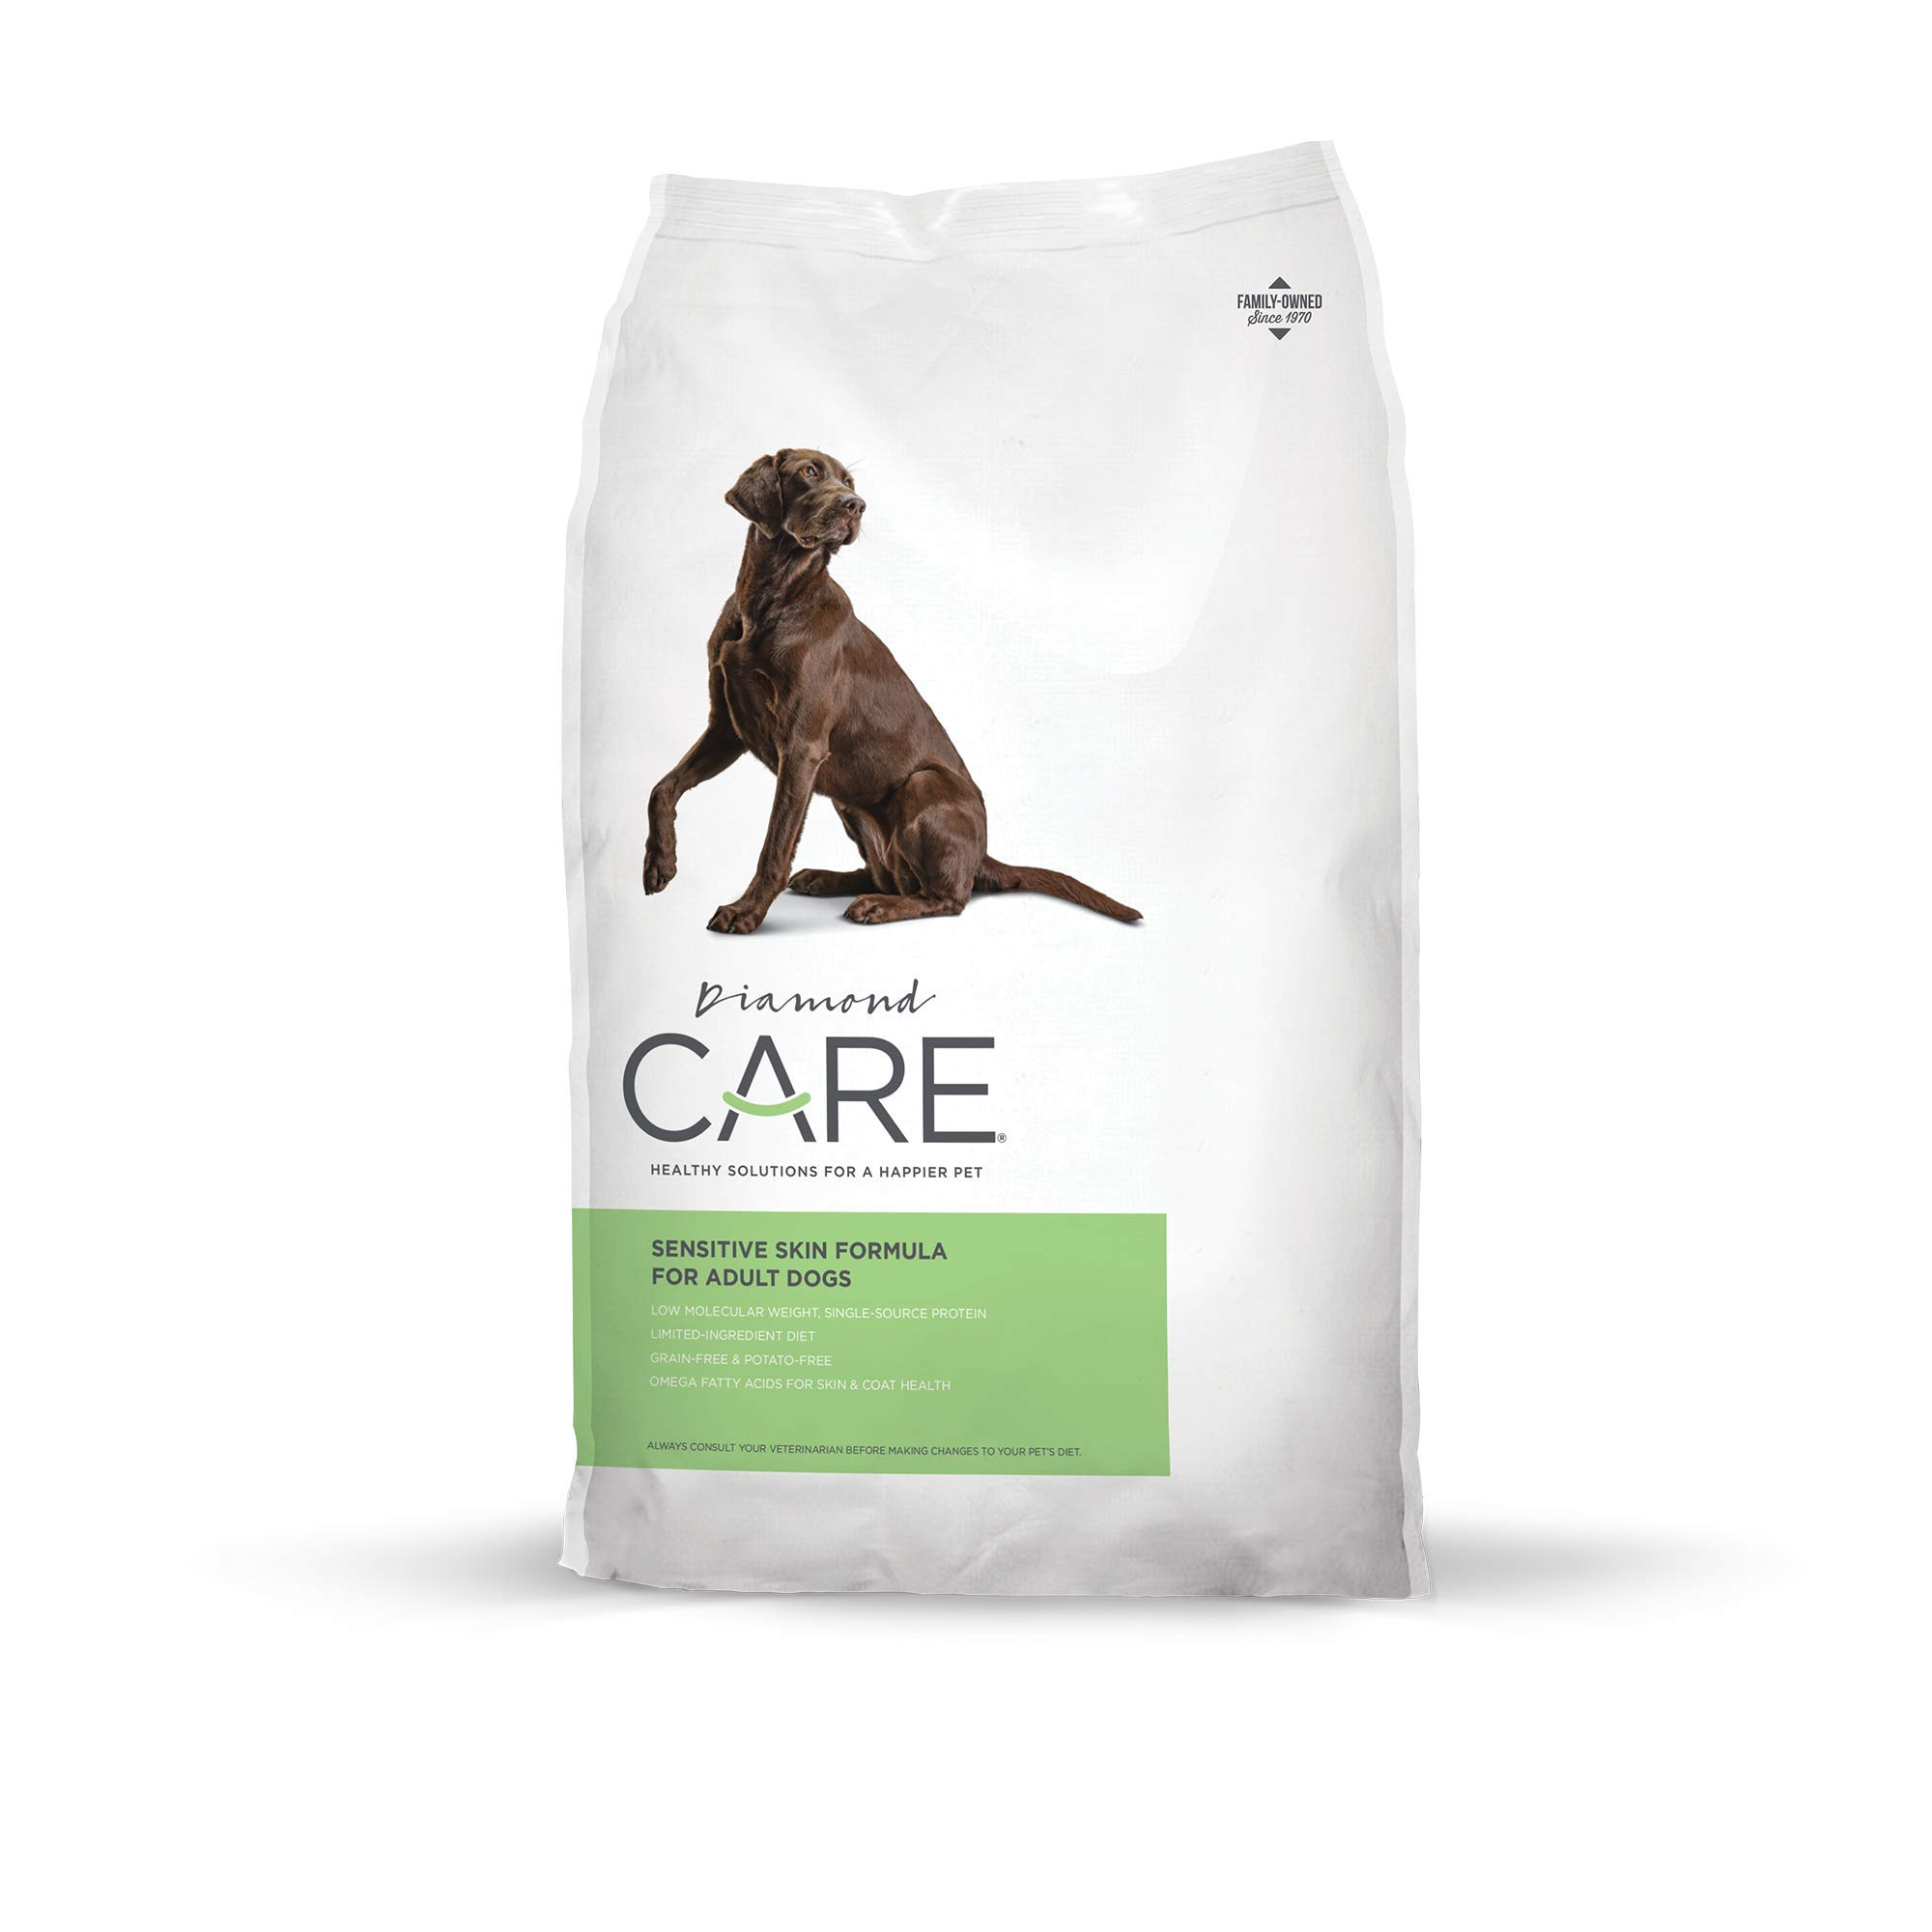 Diamond Care Sensitive Skin Recipe Specially Made As A Limited Ingredient Diet with Hypoallergenic Essentials To Support Dogs with Sensitive Skin, Itchy Skin Or Allergies 8lb by DIAMOND CARE